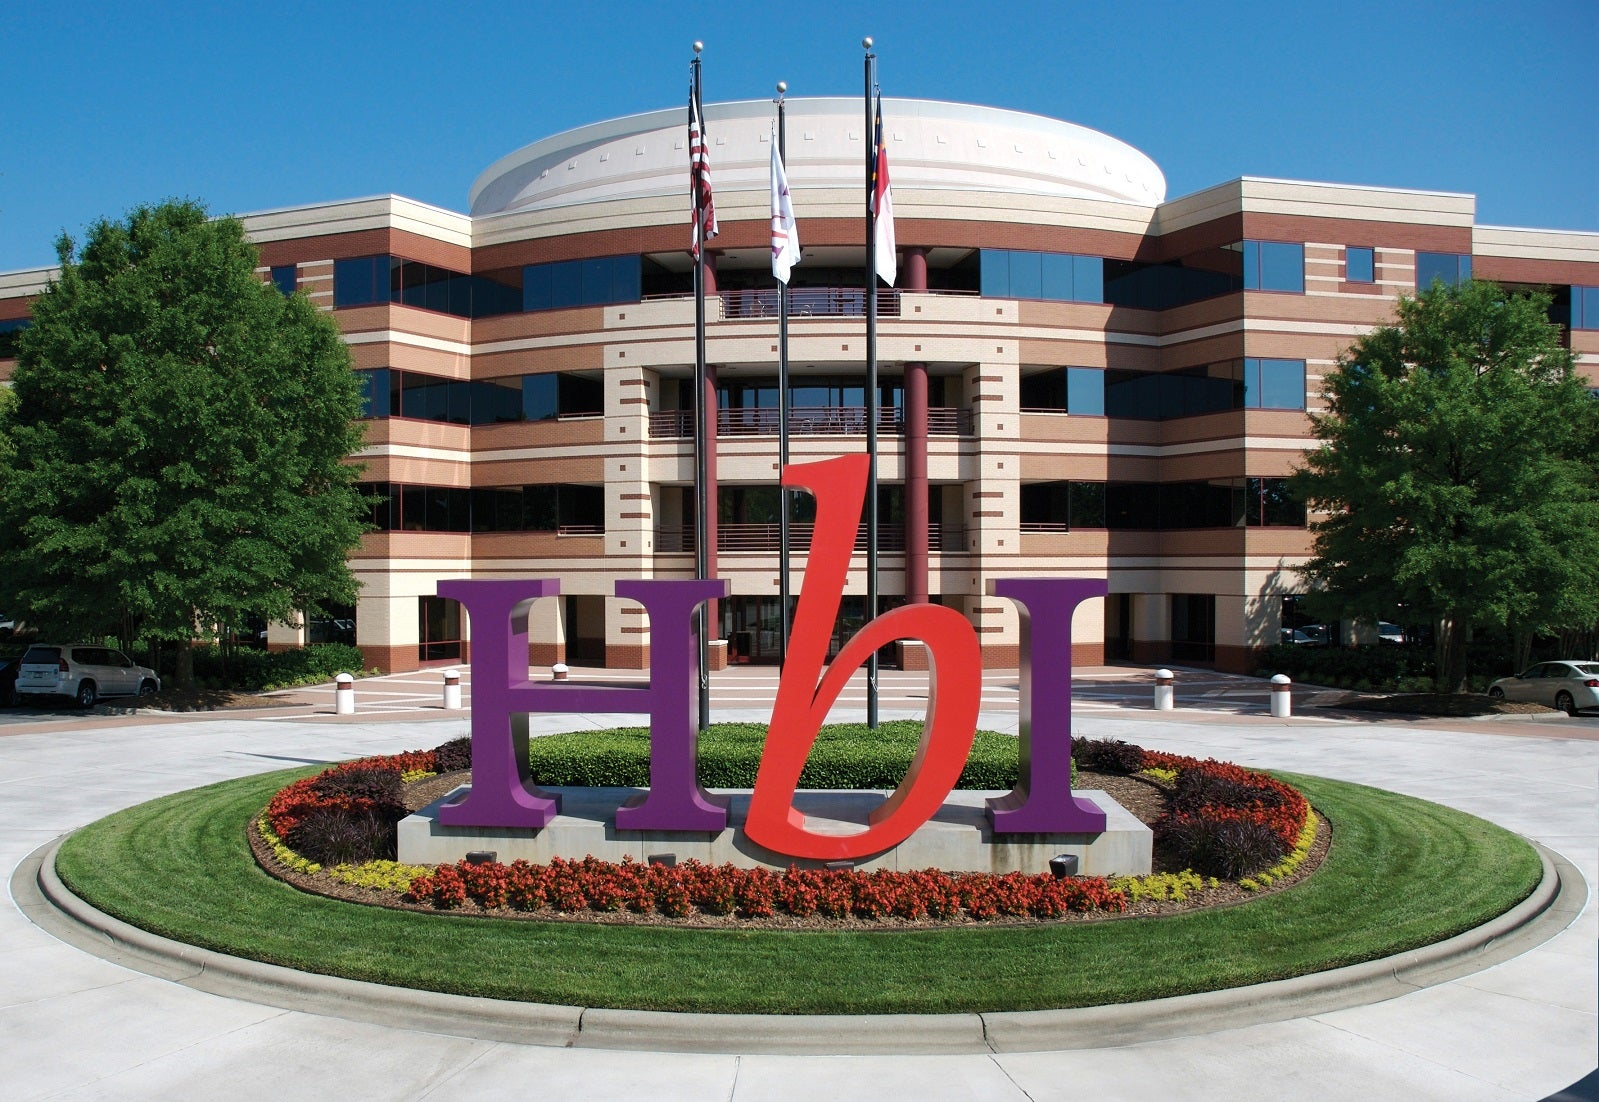 Office building with HBI logo in big letters in a median next to flagpoles.